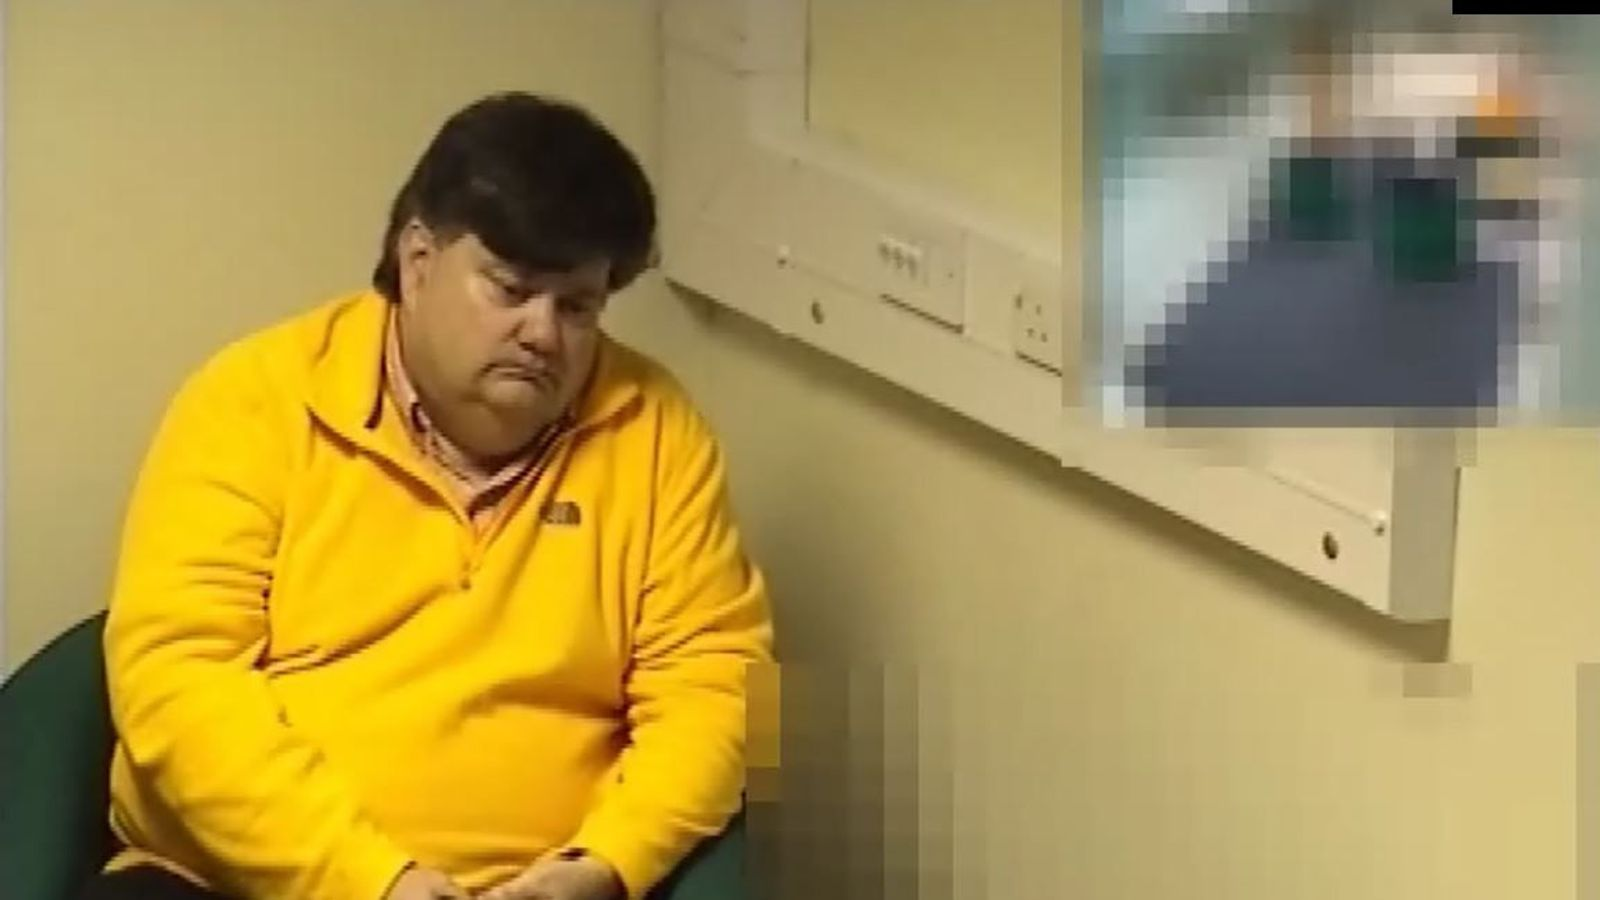 Carl Beech: Former nurse convicted of lying about VIP paedophile ring